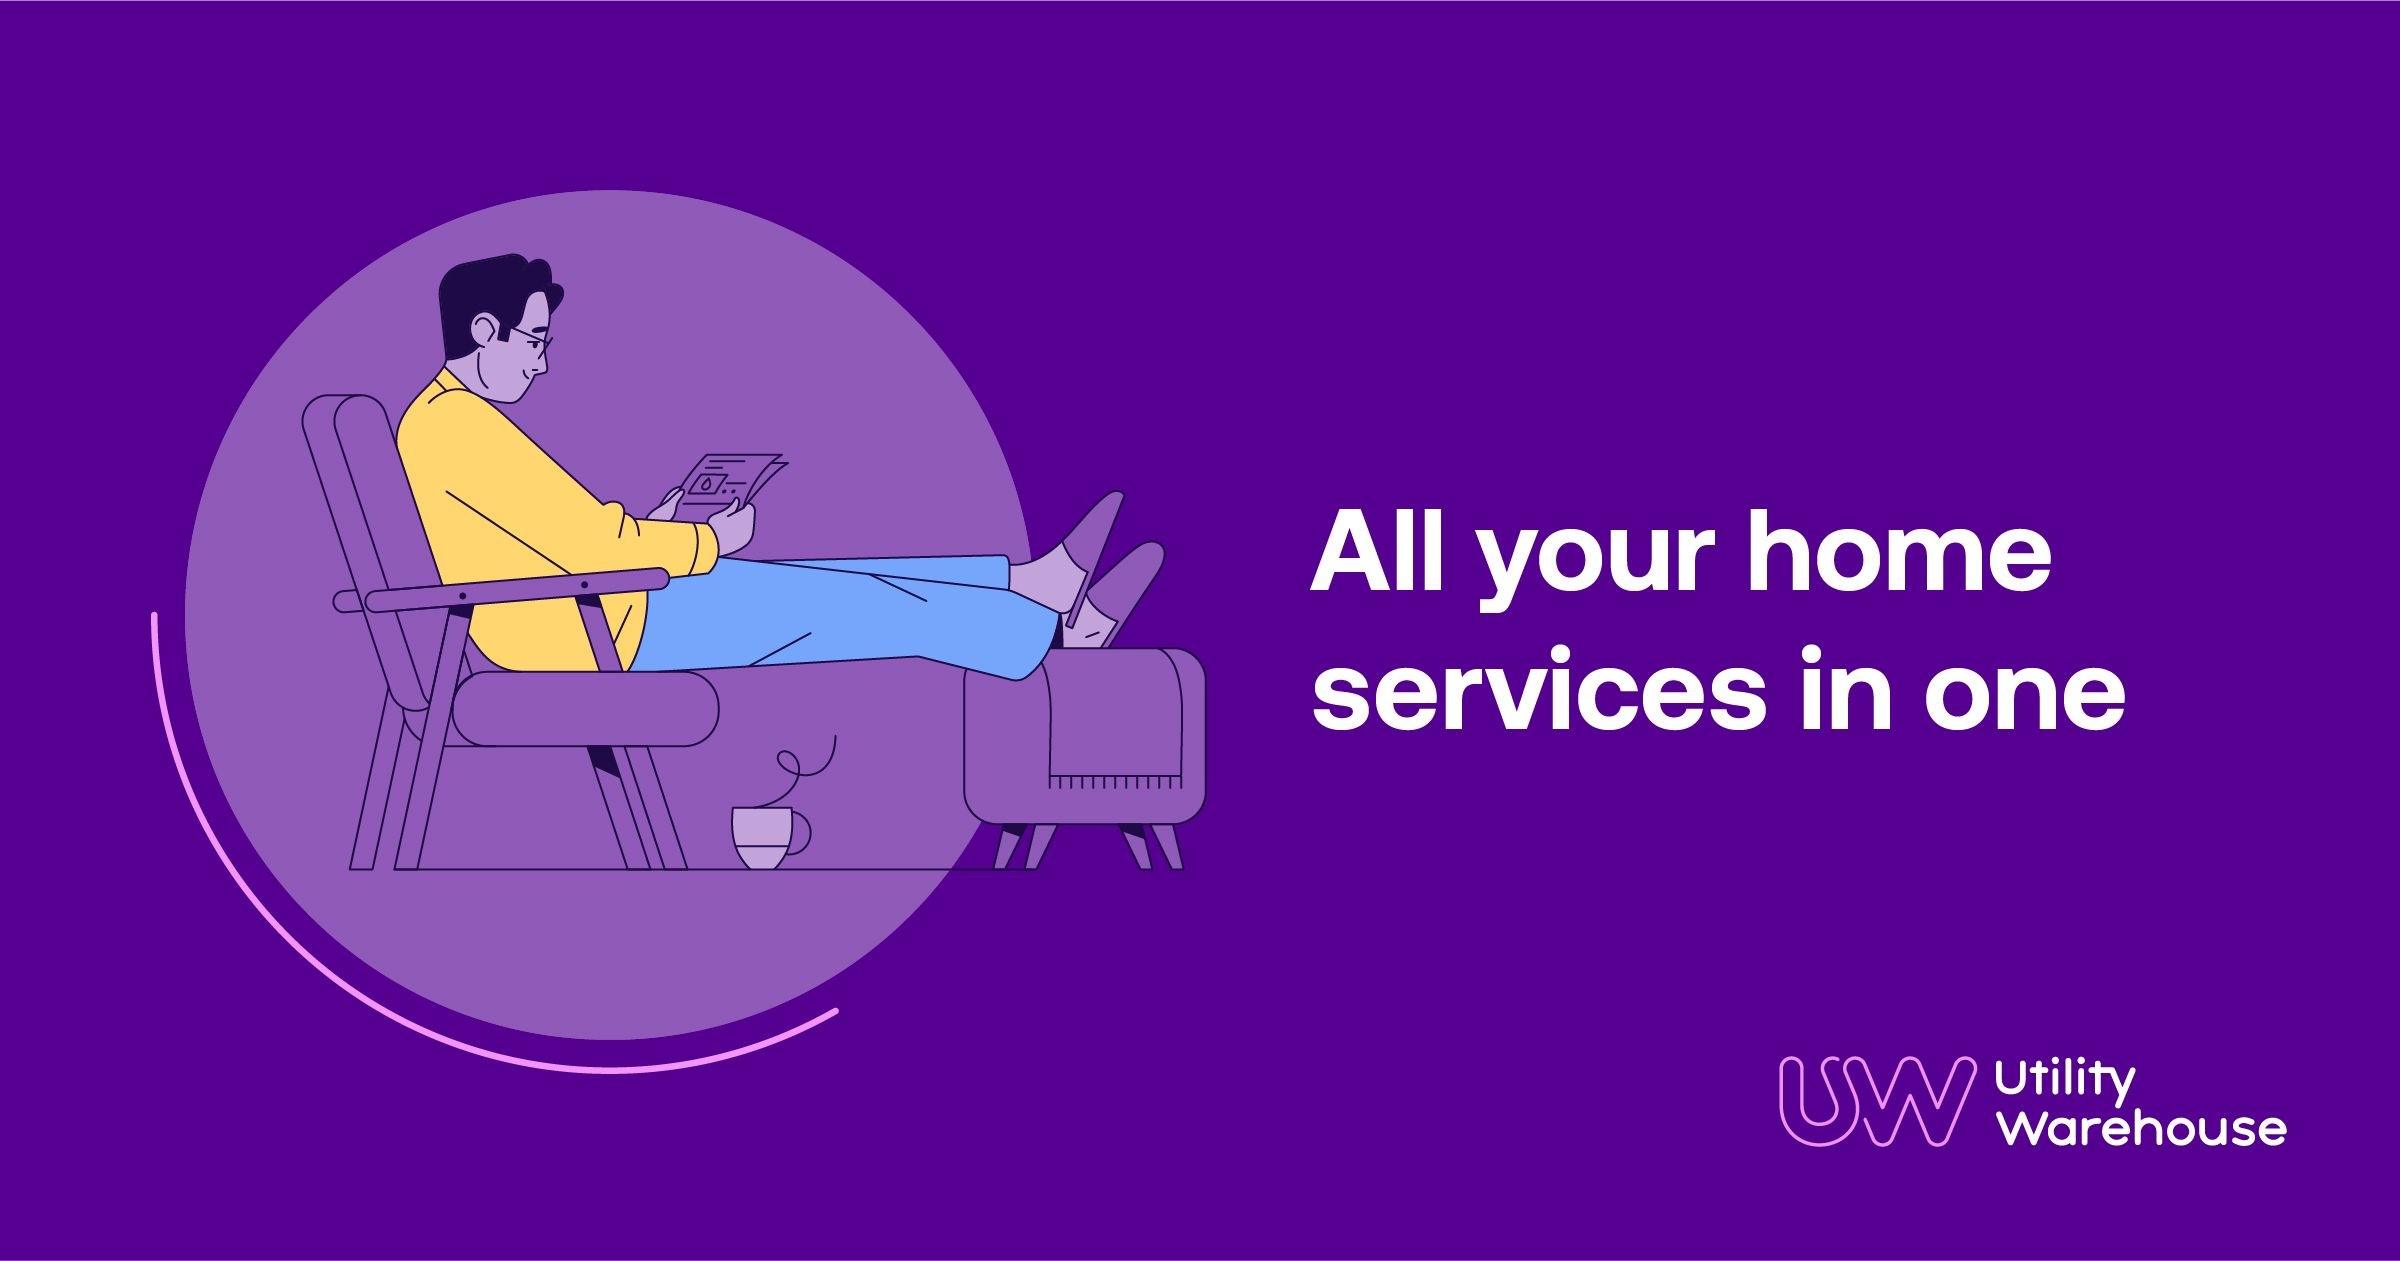 All your utilities all under one roof. One direct debit